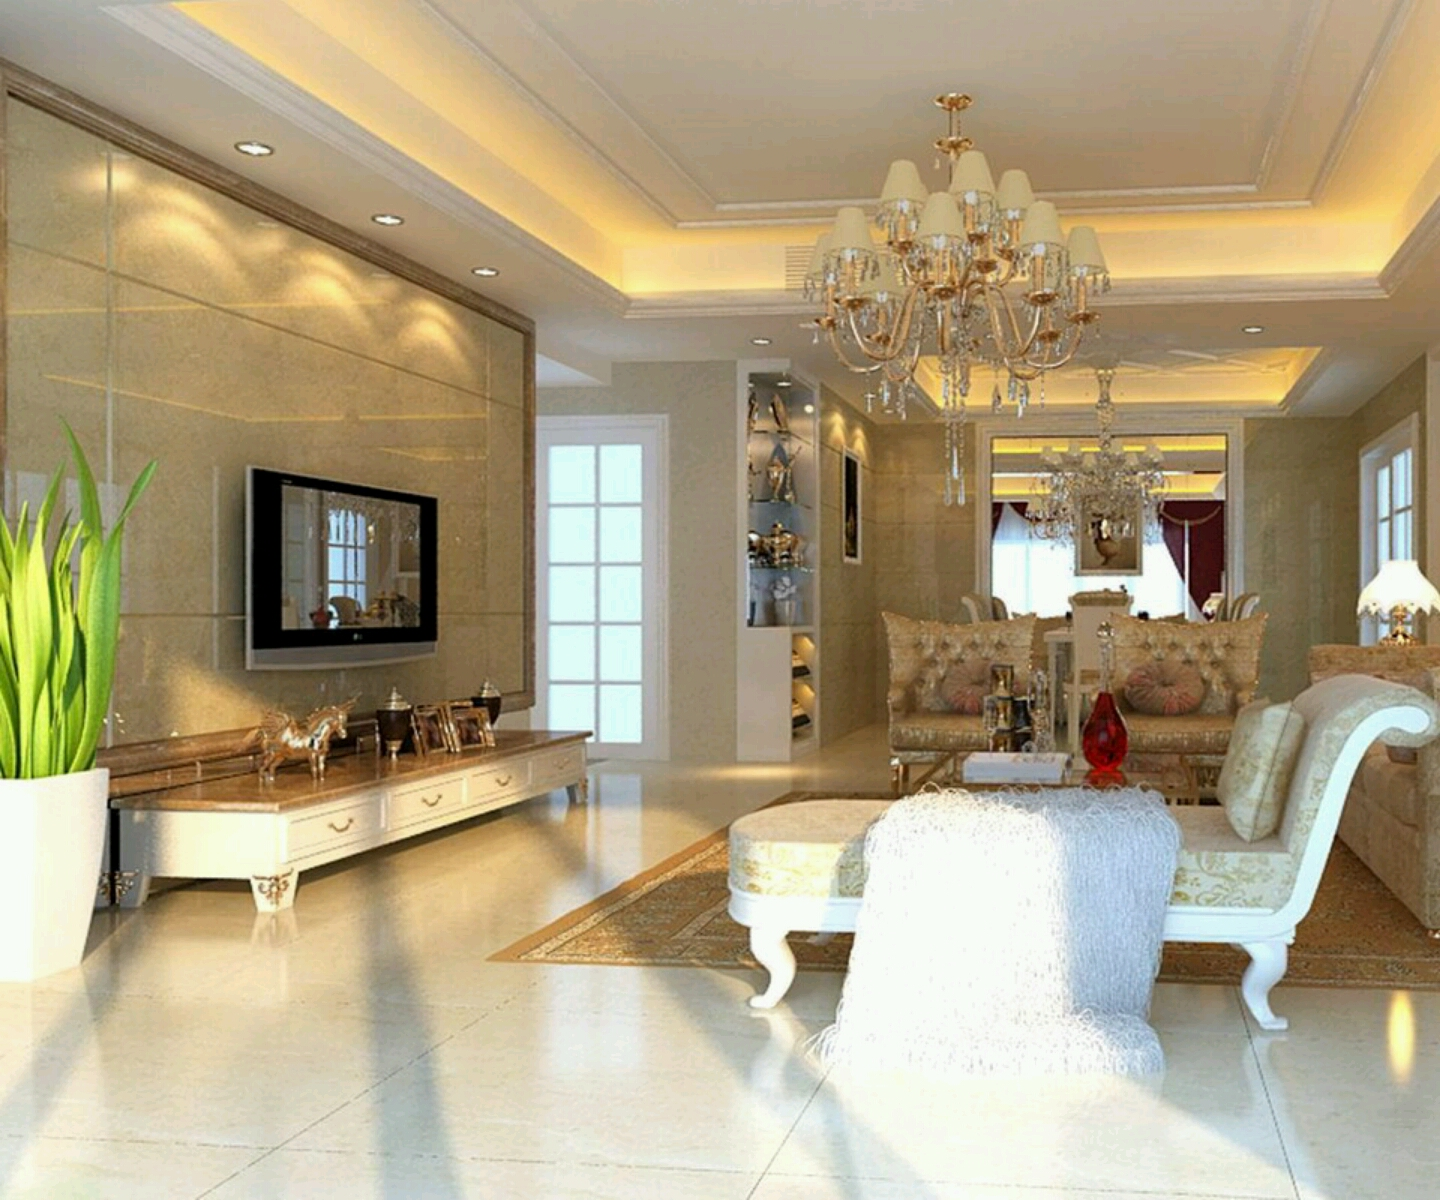 Home decor 2012 luxury homes interior decoration living room designs ideas for House and home living room ideas